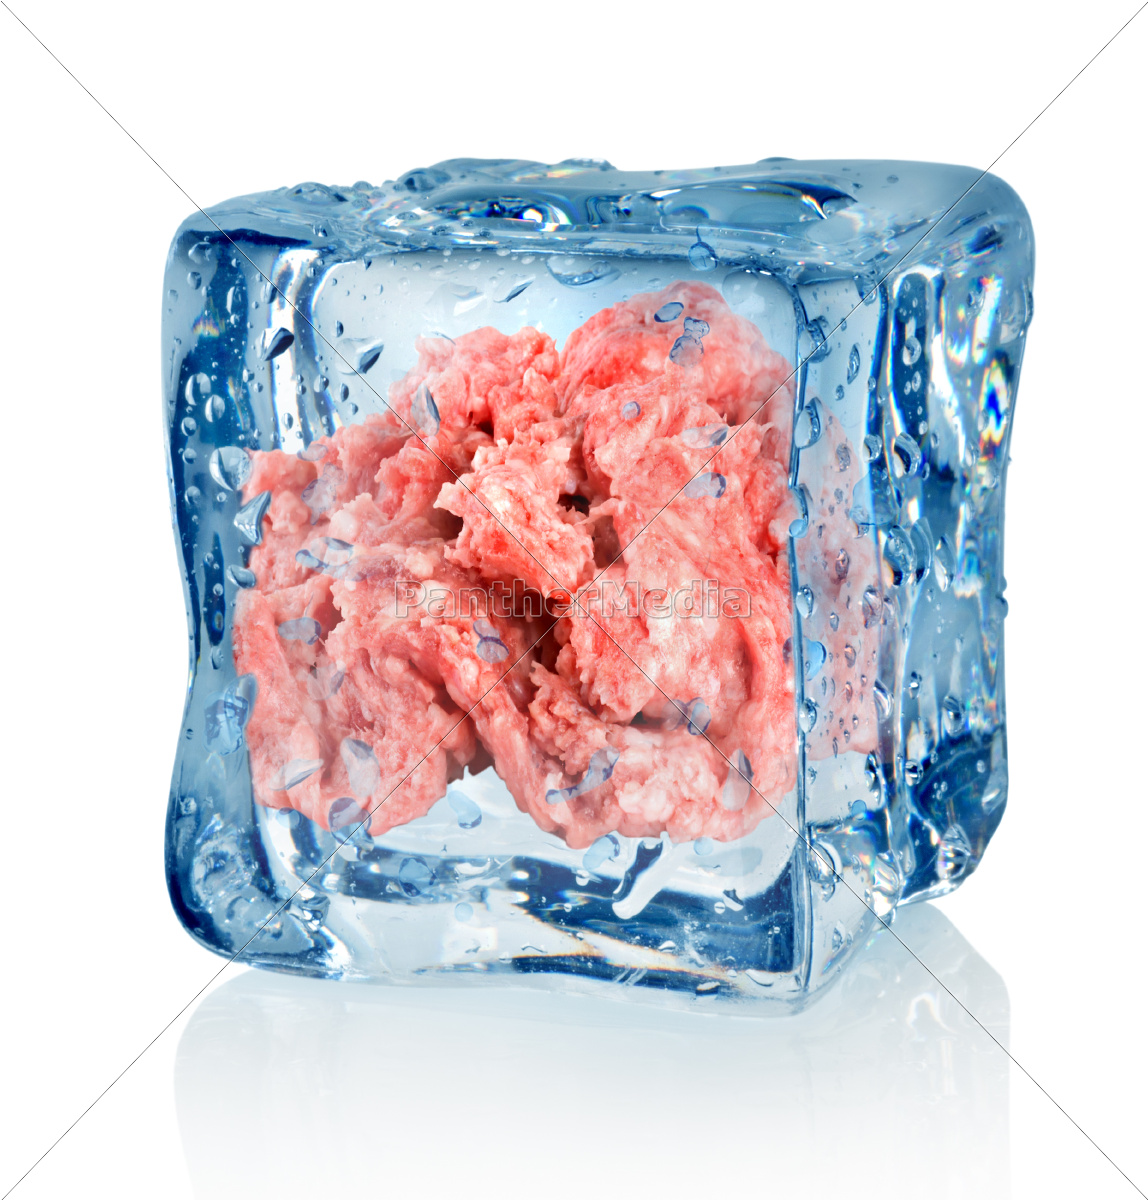 ice, cube, and, minced, meat - 10125751